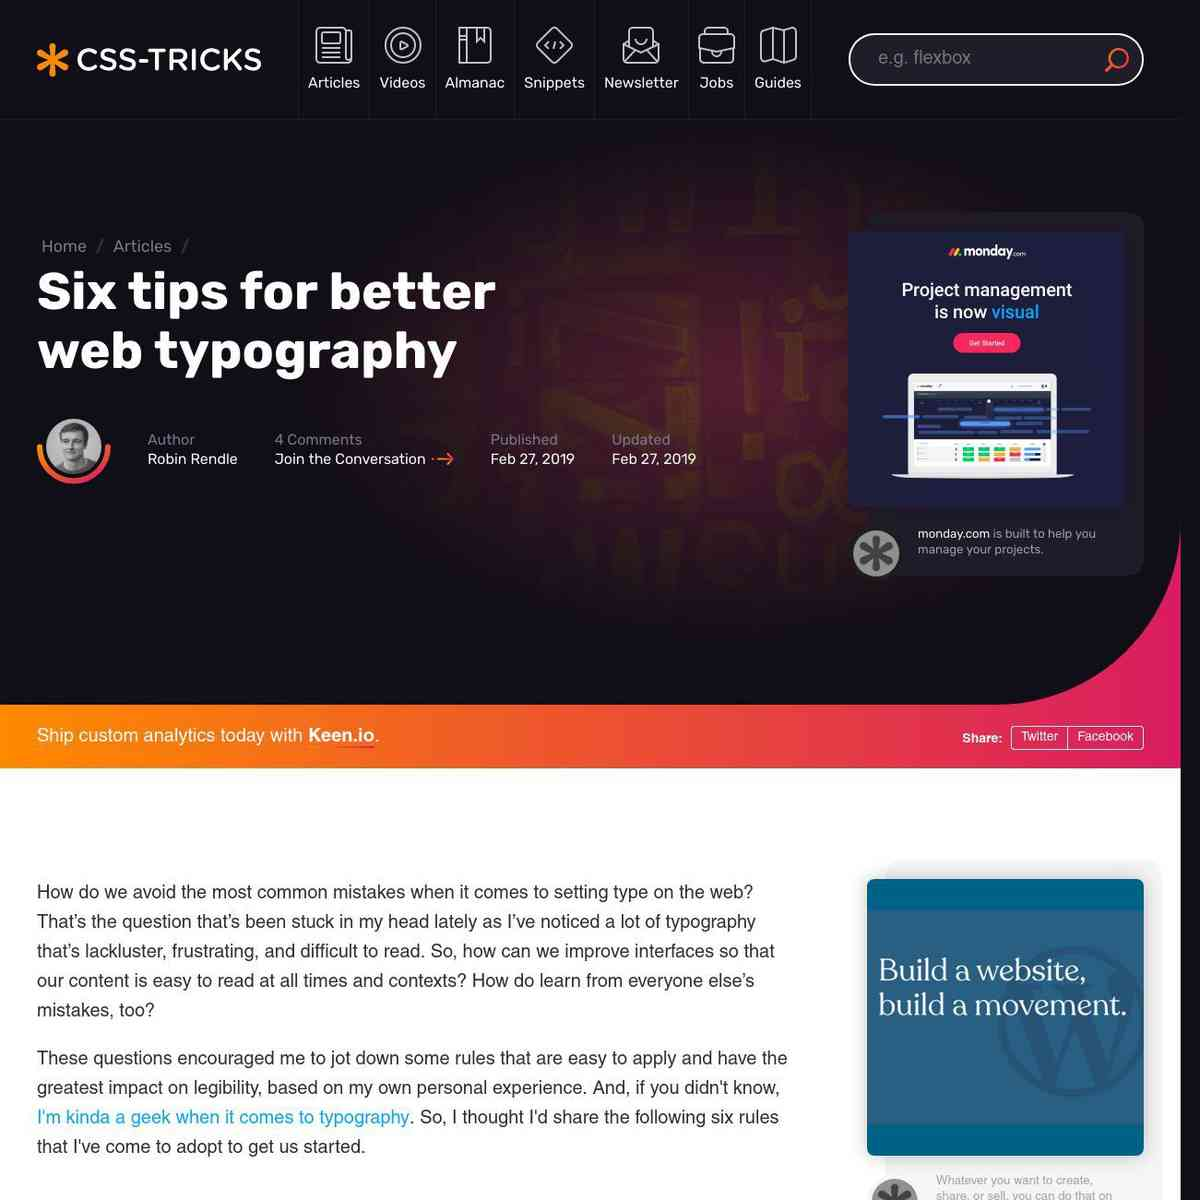 css-tricks.com/six-tips-for-better-web-typography/